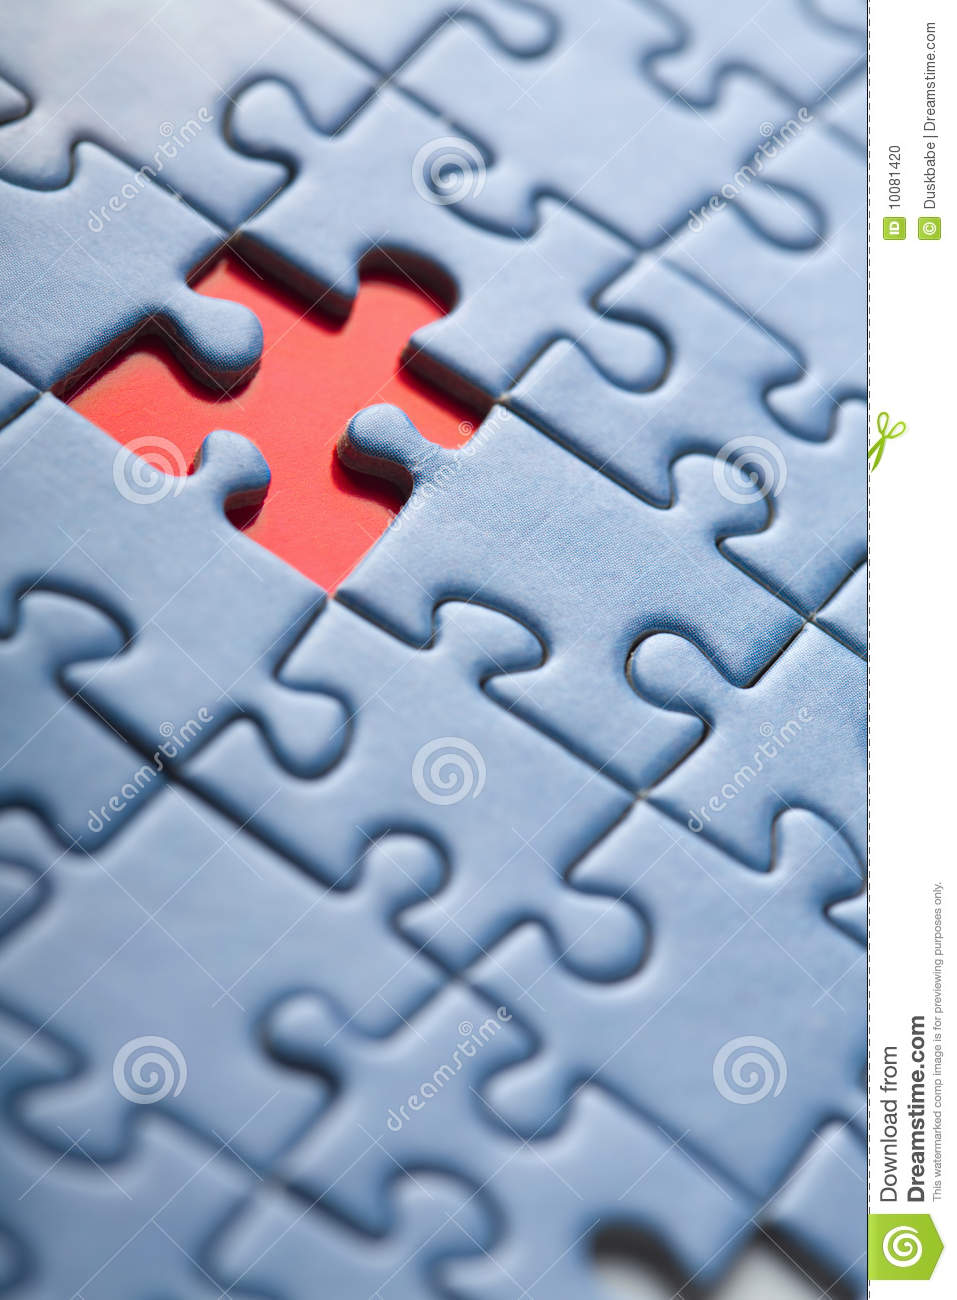 Puzzle Background With One Missing Piece Stock Photo ...